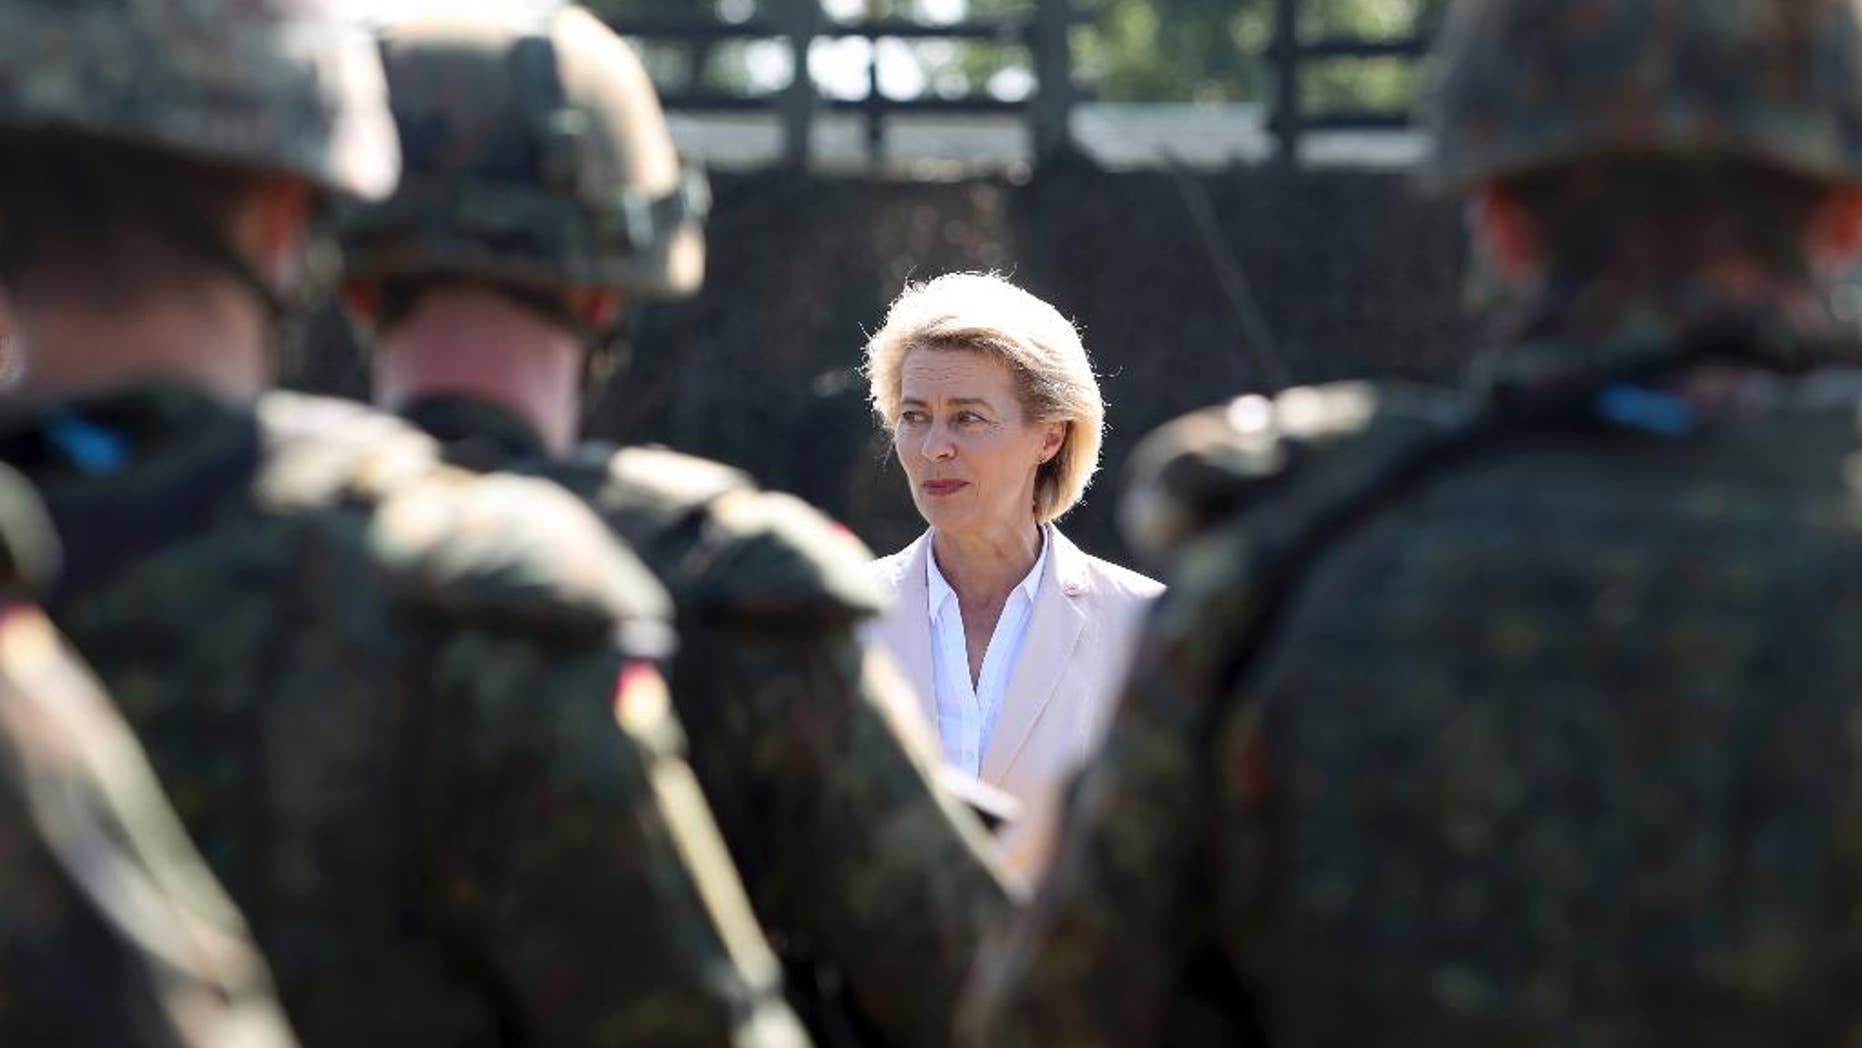 FILE - In this Aug. 16, 2016 file photo German Defence Minister Ursula von der Leyen speaks to soldiers from the German army in Weissenfels, Germany. Federal prosecutor's spokeswoman Frauke Koehler said that 27-year-old Maximilian T. was arrested in the southwestern city of Kehl on Tuesday, May 9, 2017 on charges of preparing an act of violence. (Sebastian Willnow/dpa via AP, file)